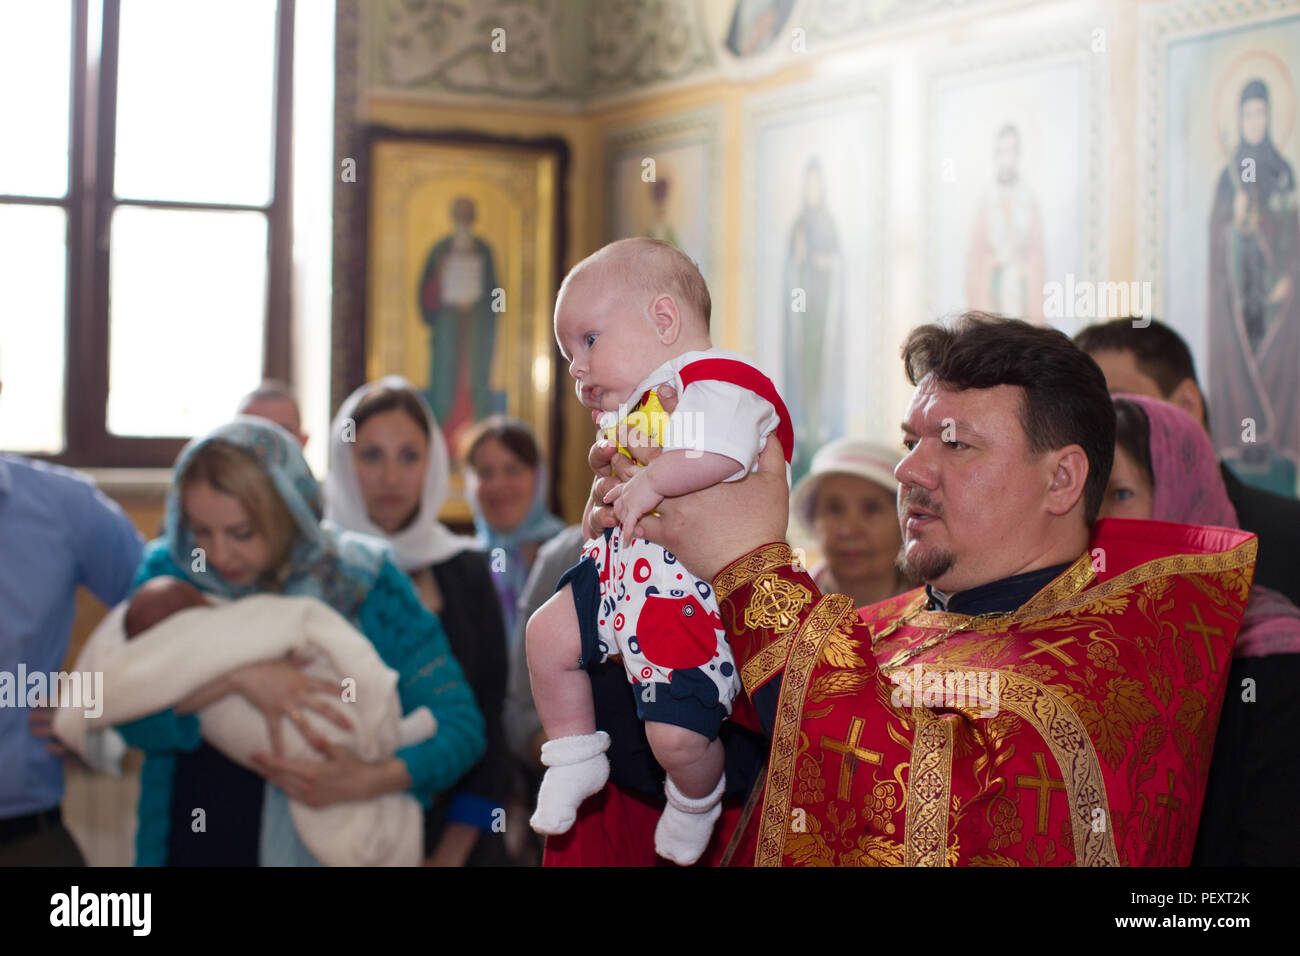 Gomel Diocese of the Belarusian Orthodox Church